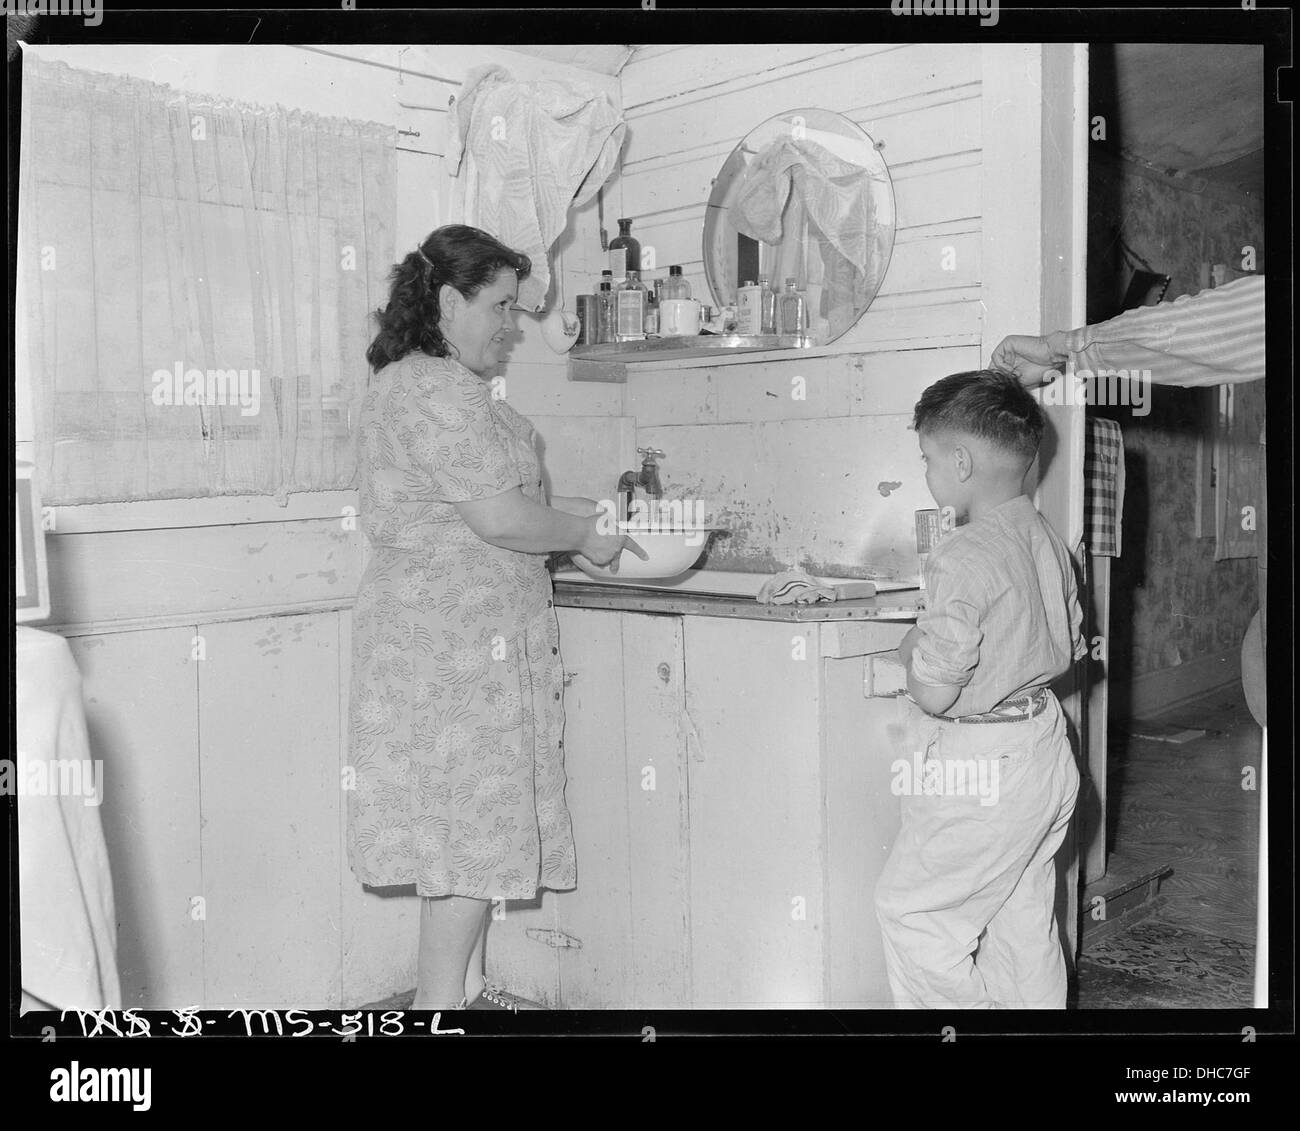 Family In Kitchen Black and White Stock Photos & Images - Alamy